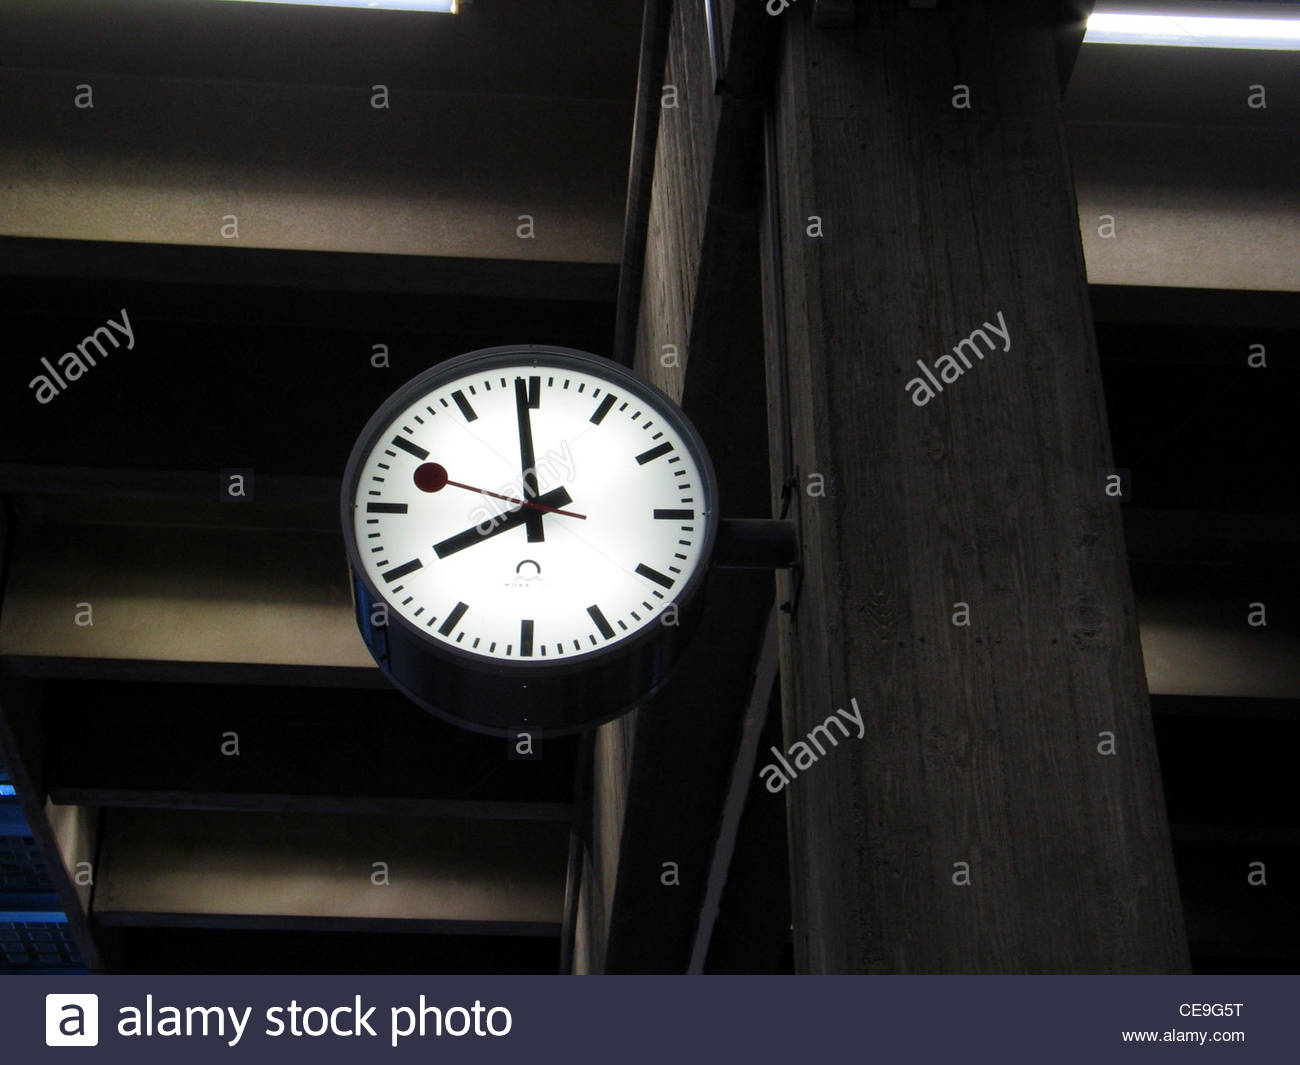 Classic analog clock showing eight o'clock at a railway station in Switzerland - Stock Image